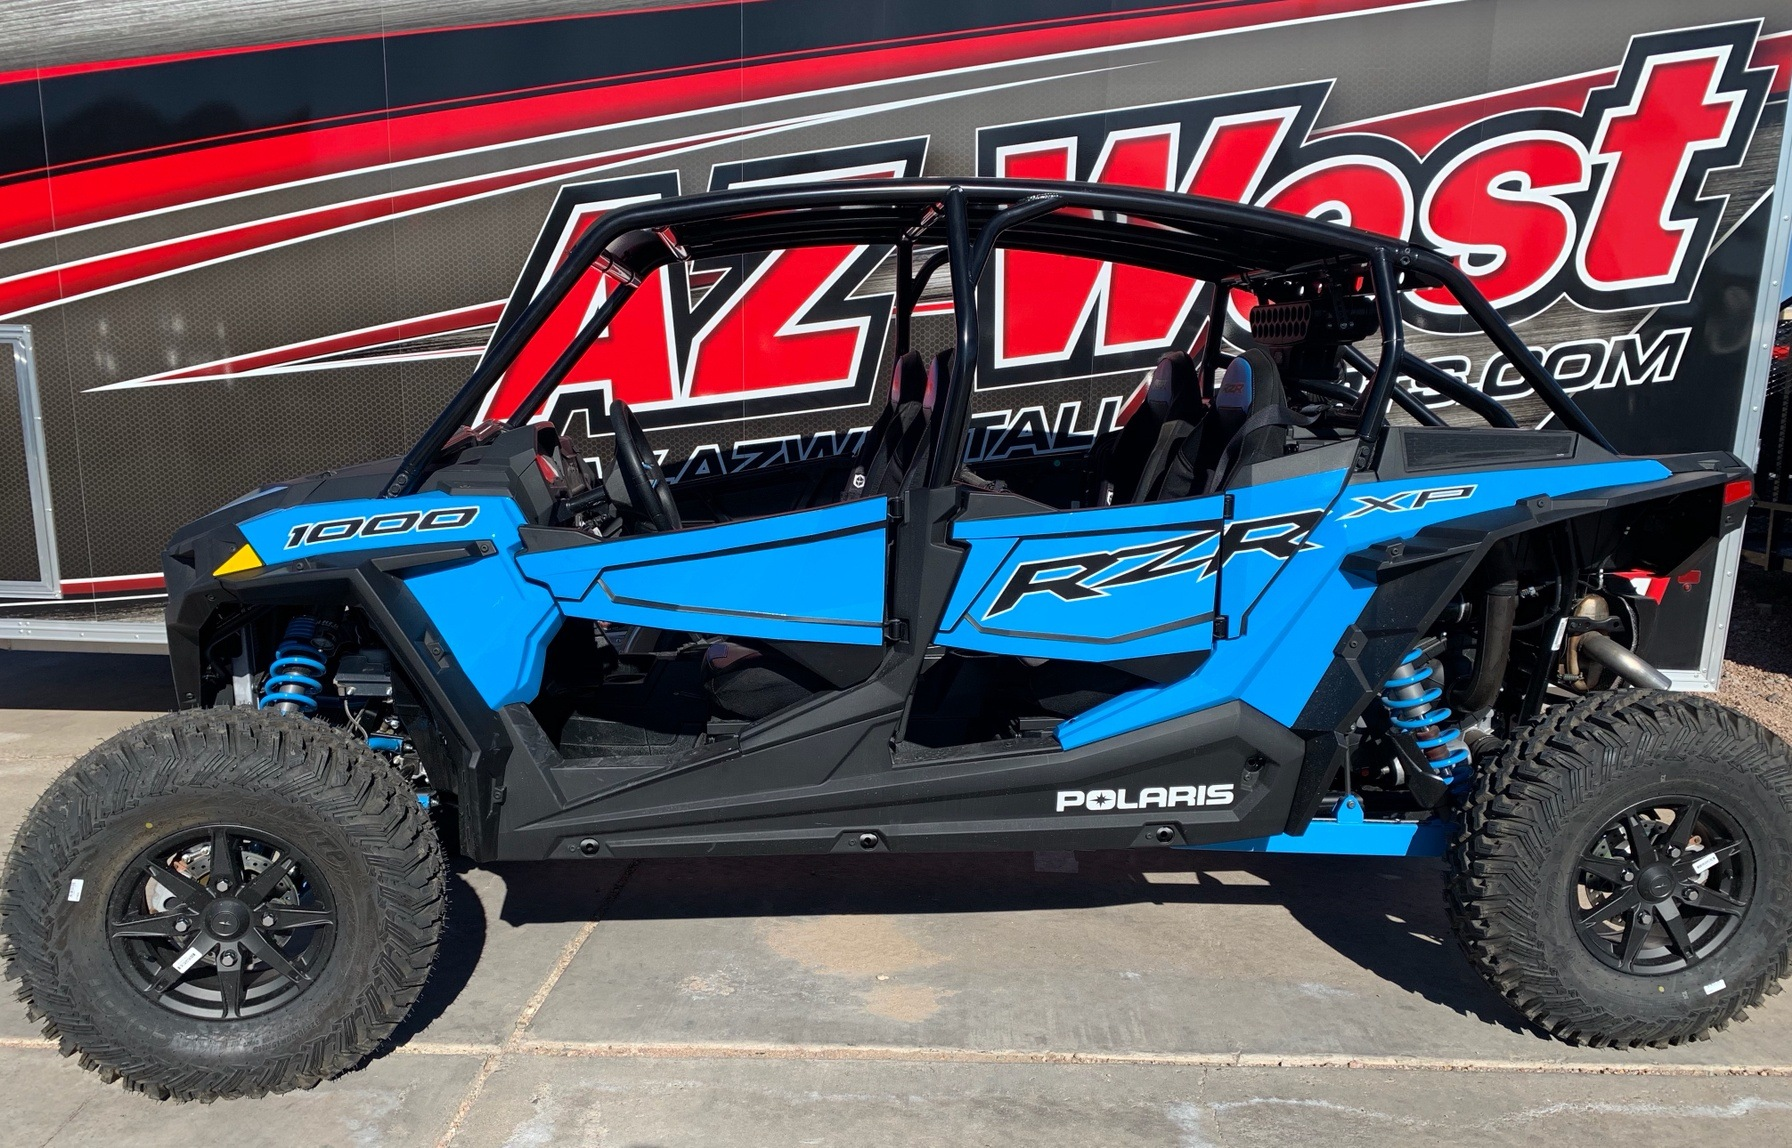 2020 Polaris RZR XP 4 1000 in Lake Havasu City, Arizona - Photo 1